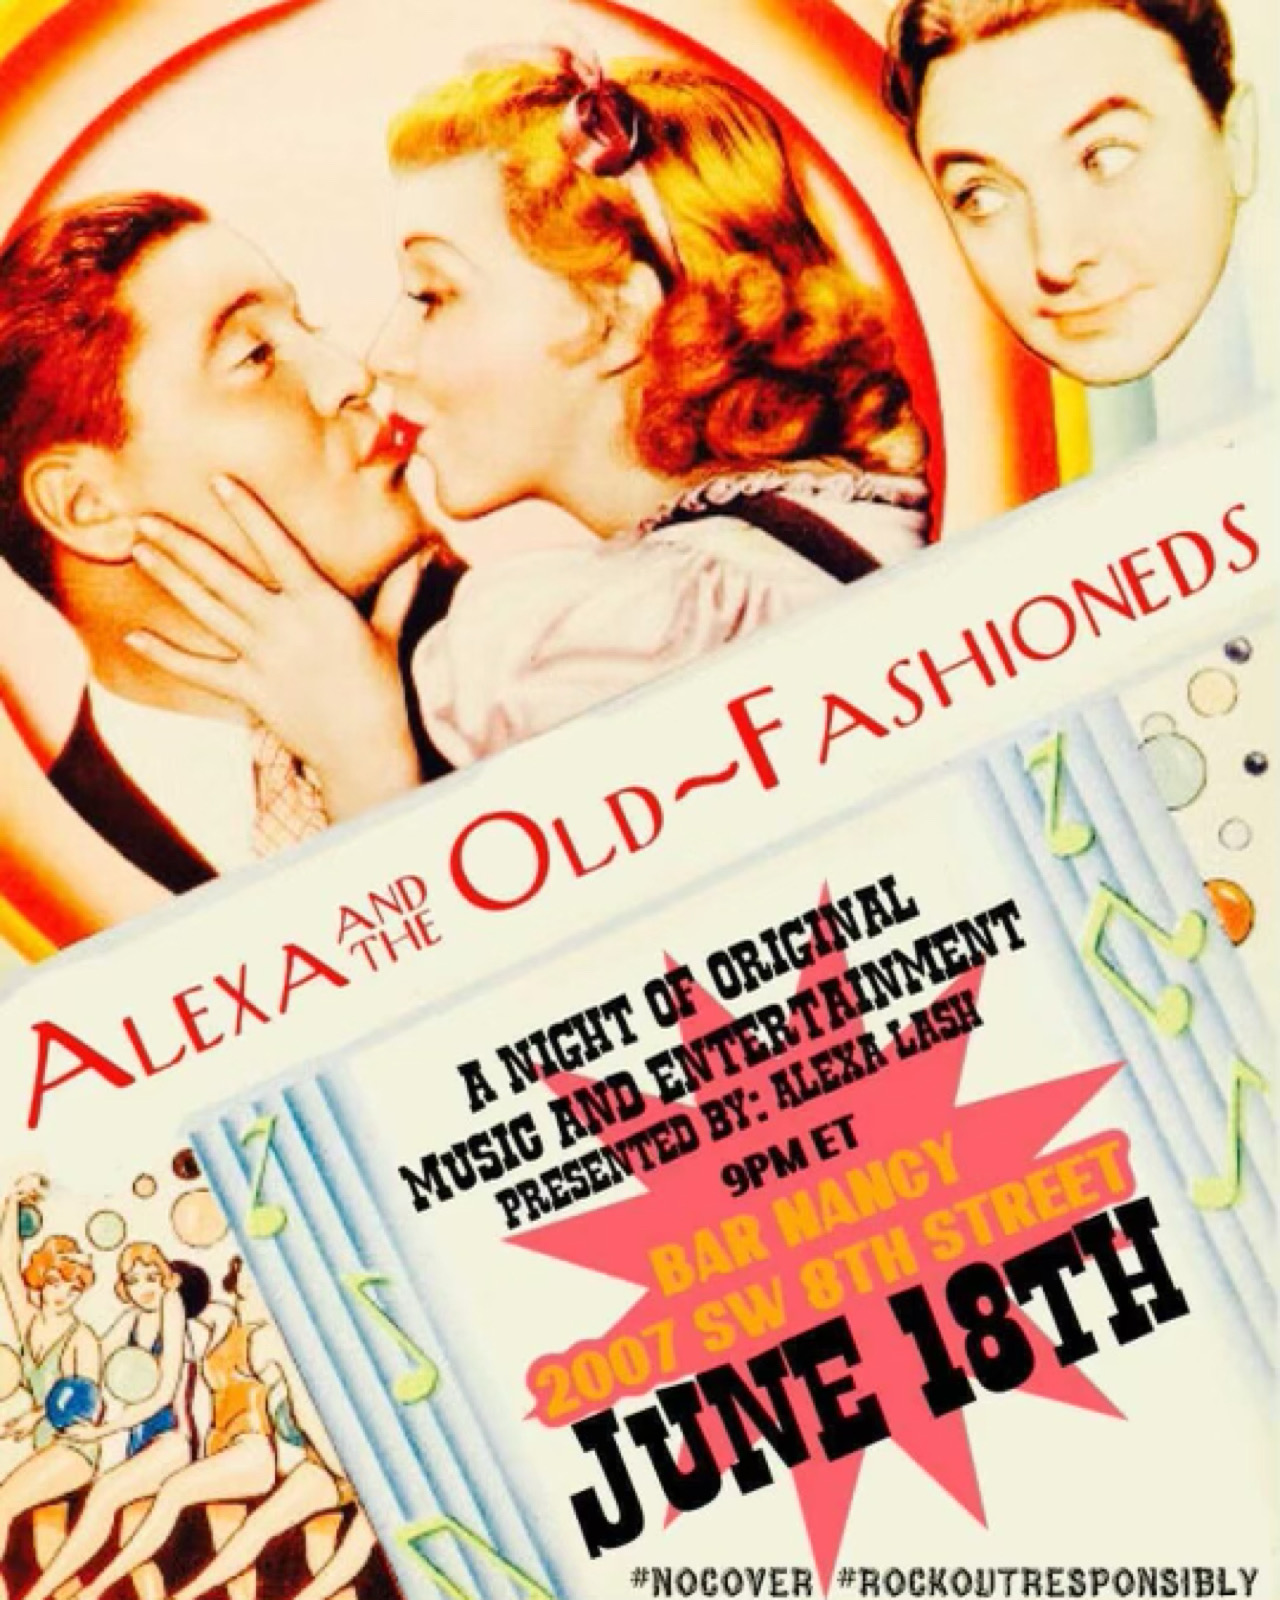 Alexa and the Old Fashioneds at Bar Nancy - June 18th